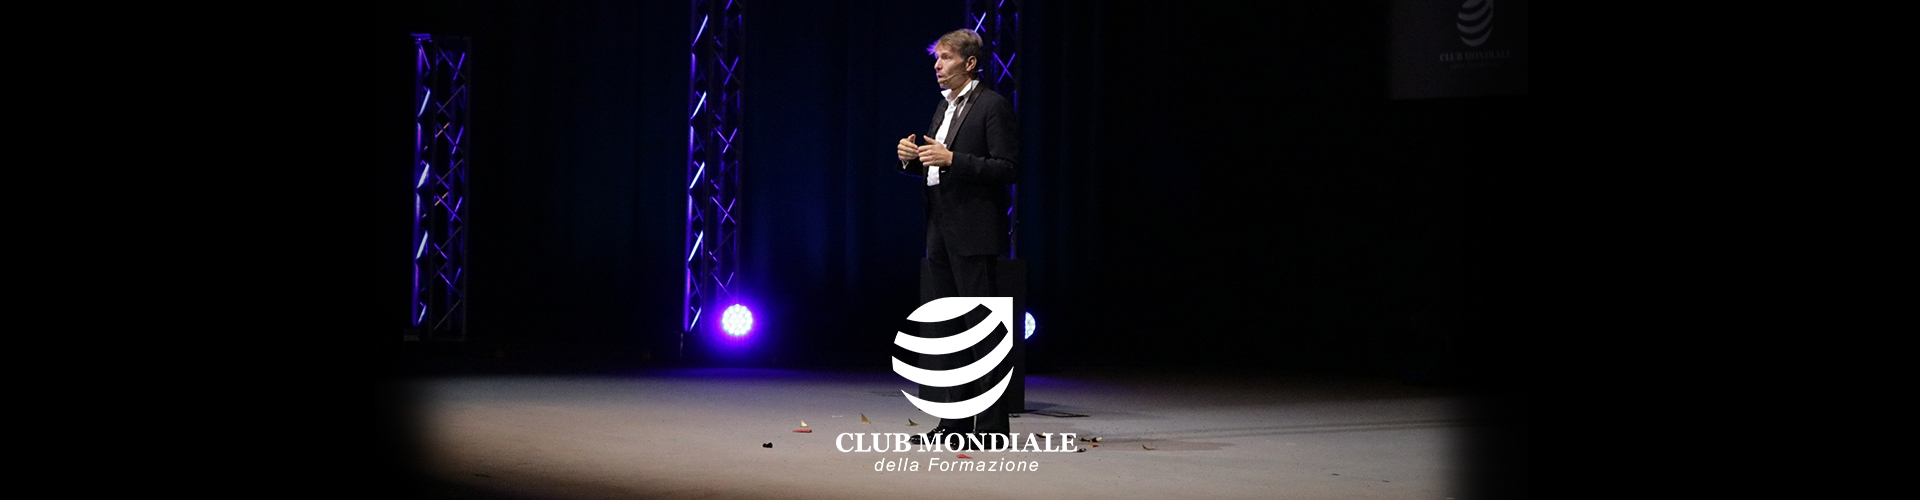 Club Mondial de l'Education